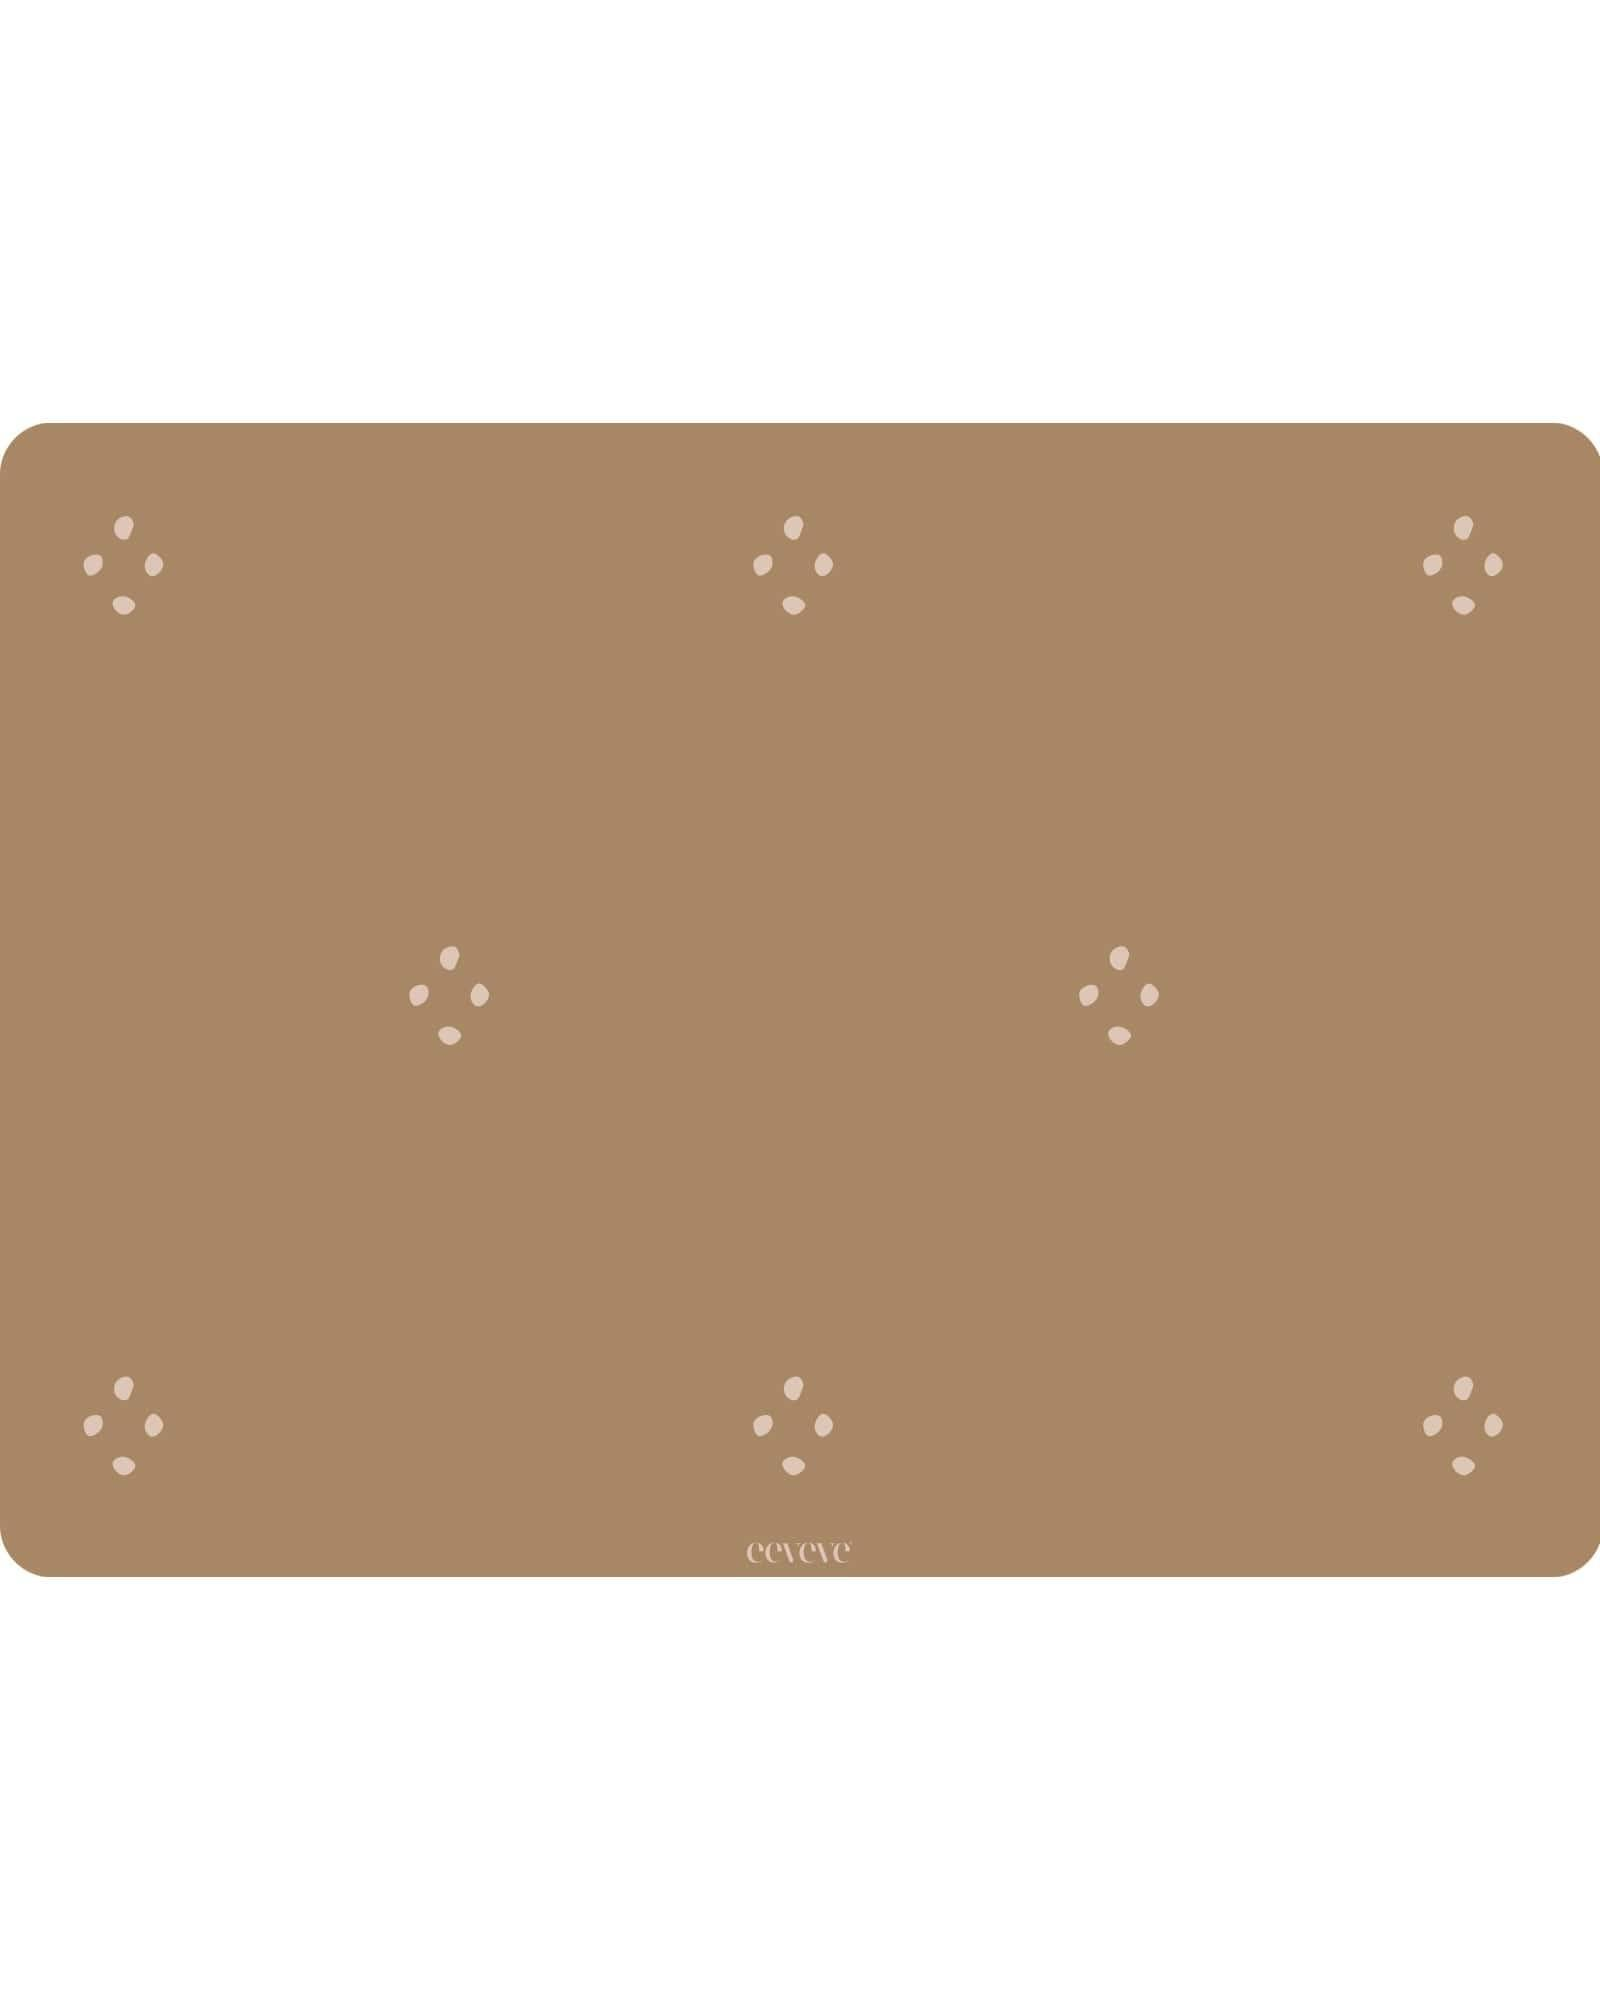 Eeveve - 6x Placemats Dotted - Autumn Gold